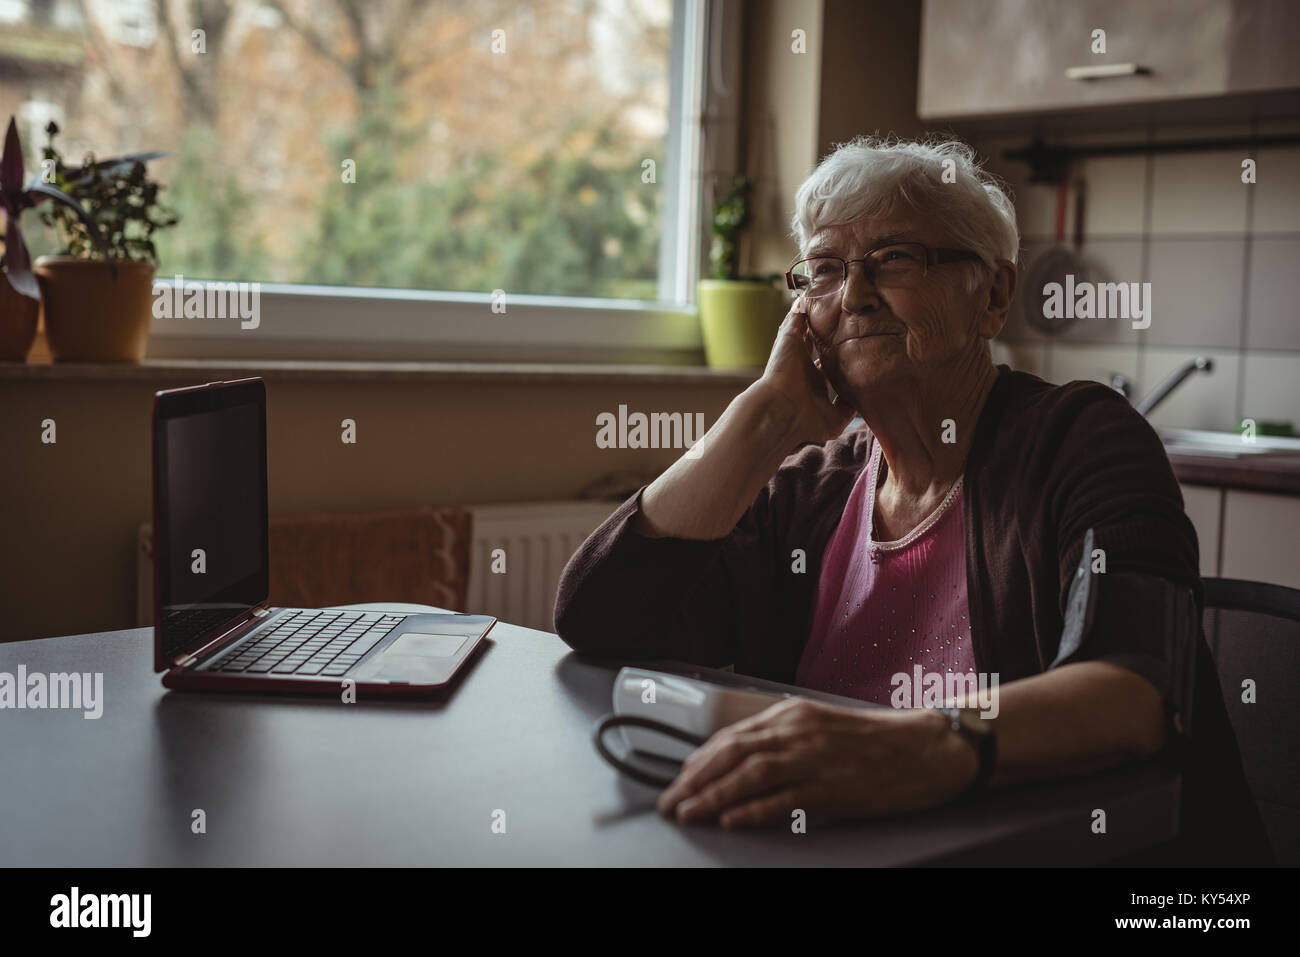 Senior woman sitting with blood pressure machine and a laptop - Stock Image